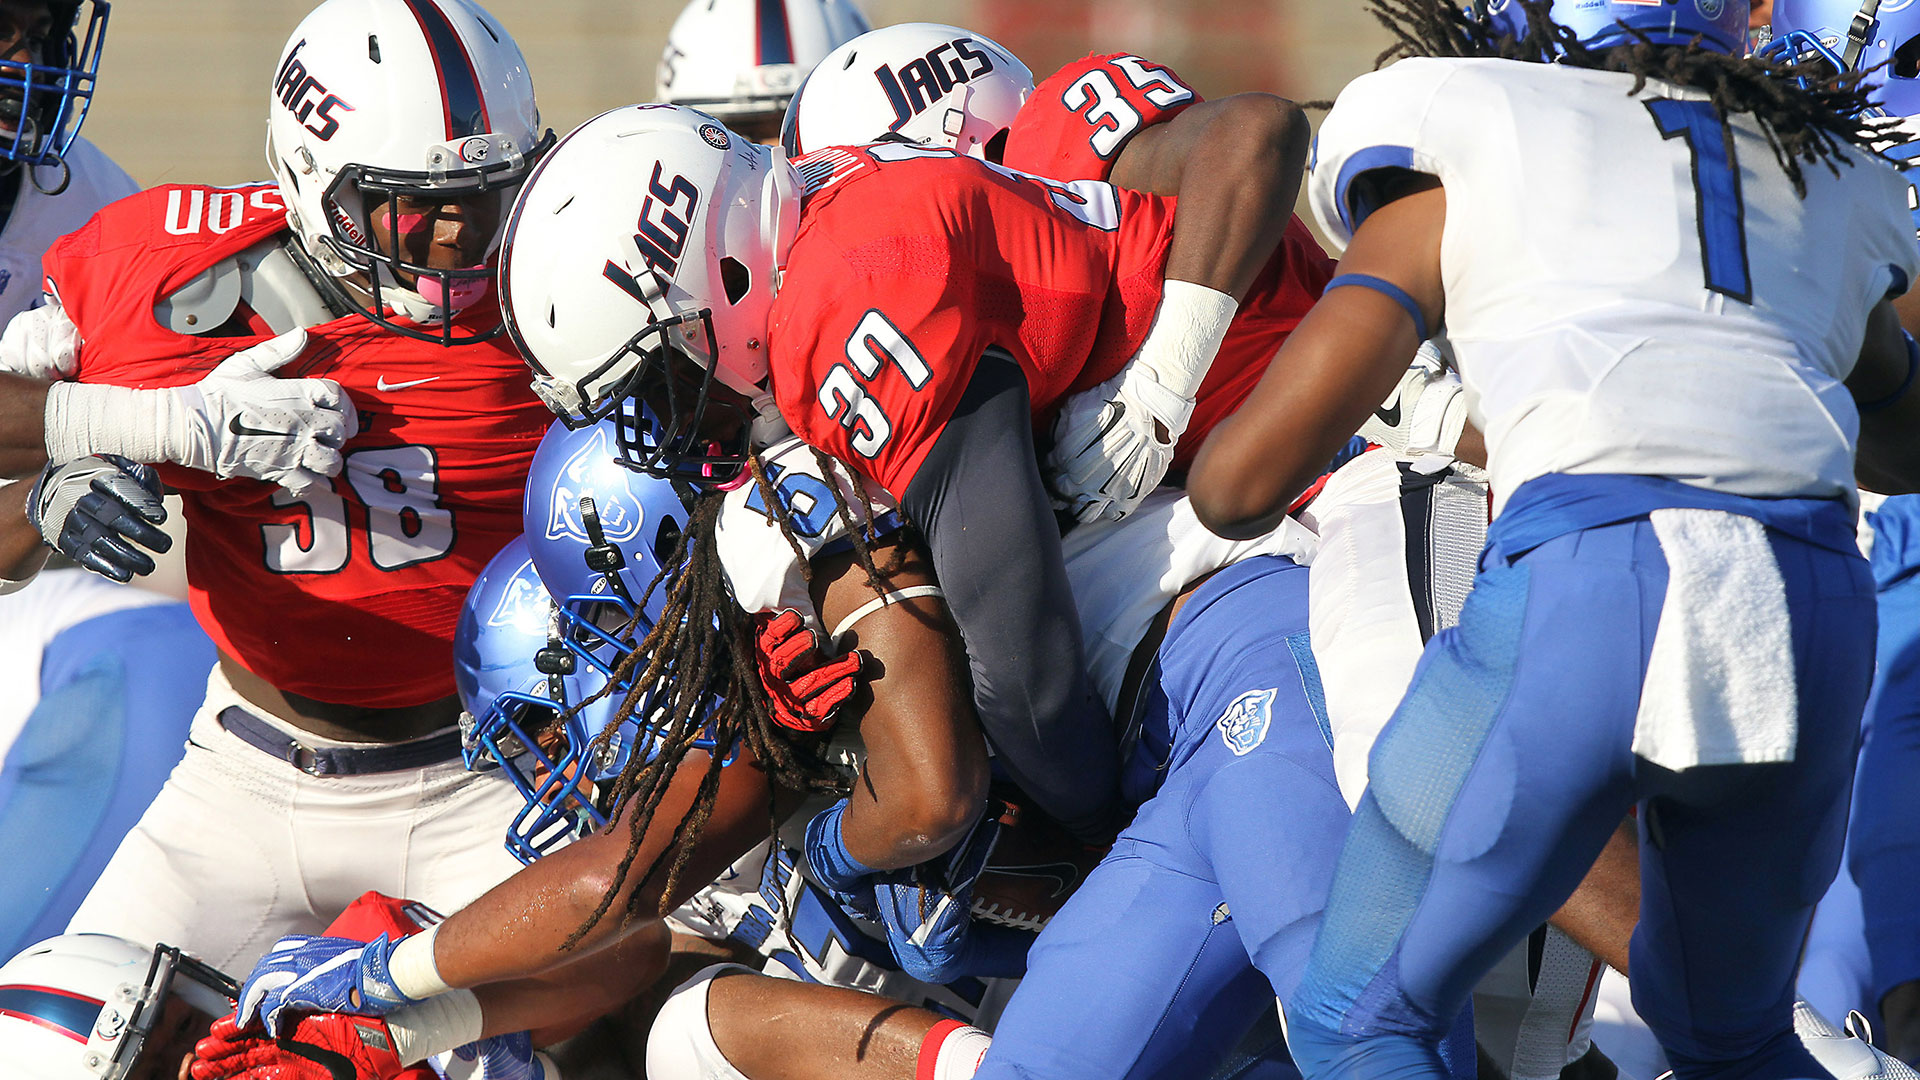 Television information and updated game times for five jag television information and updated game times for five jag football games announced university of south alabama sciox Gallery